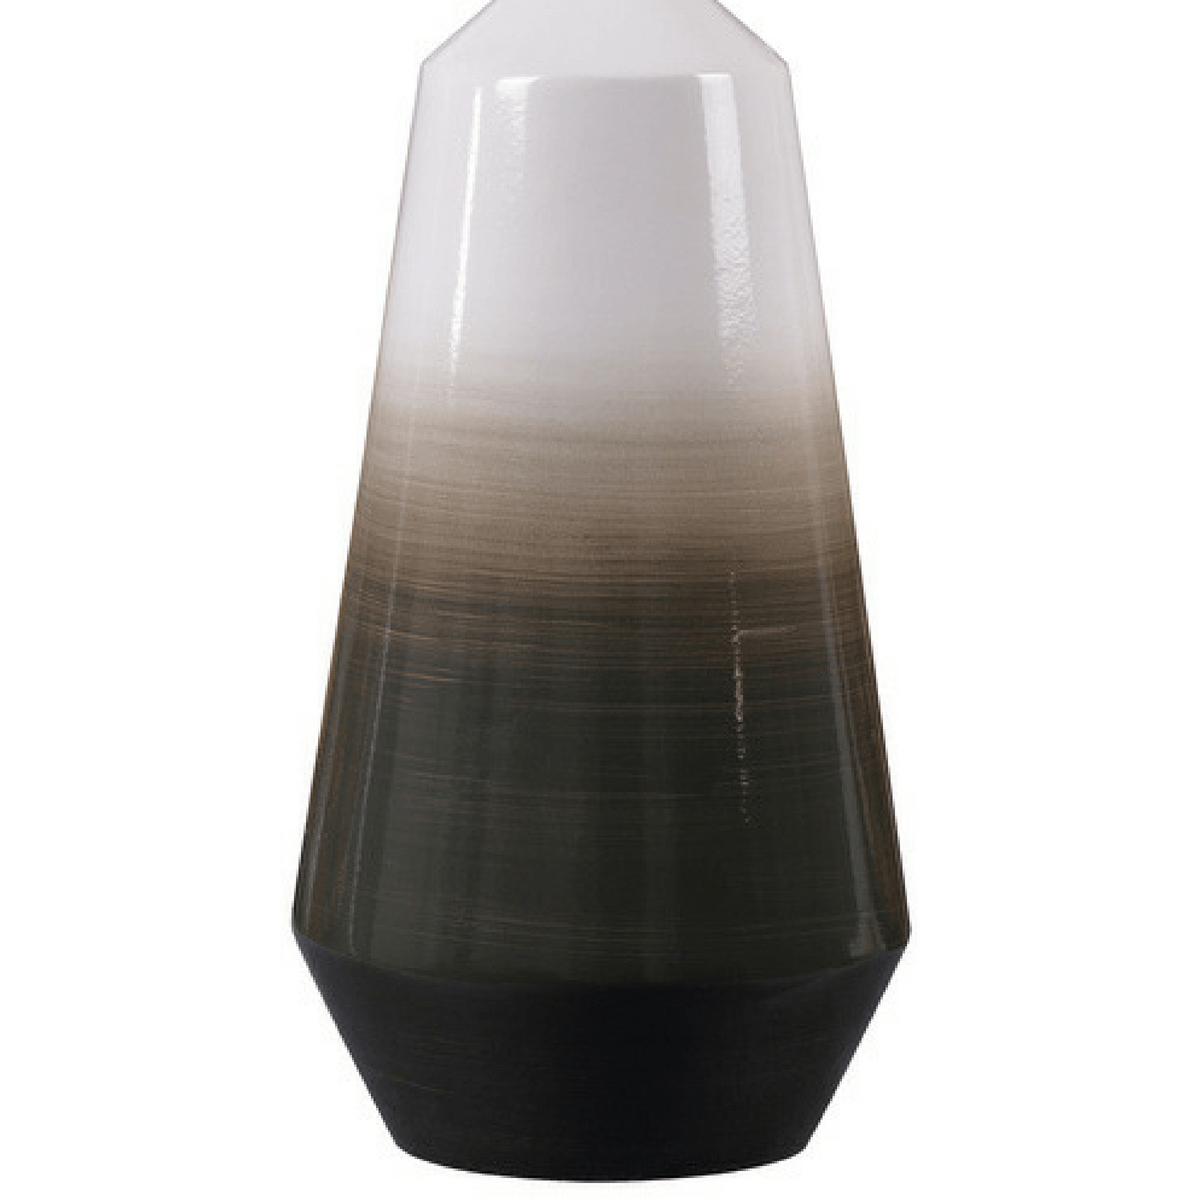 Ombre Gray Lamp